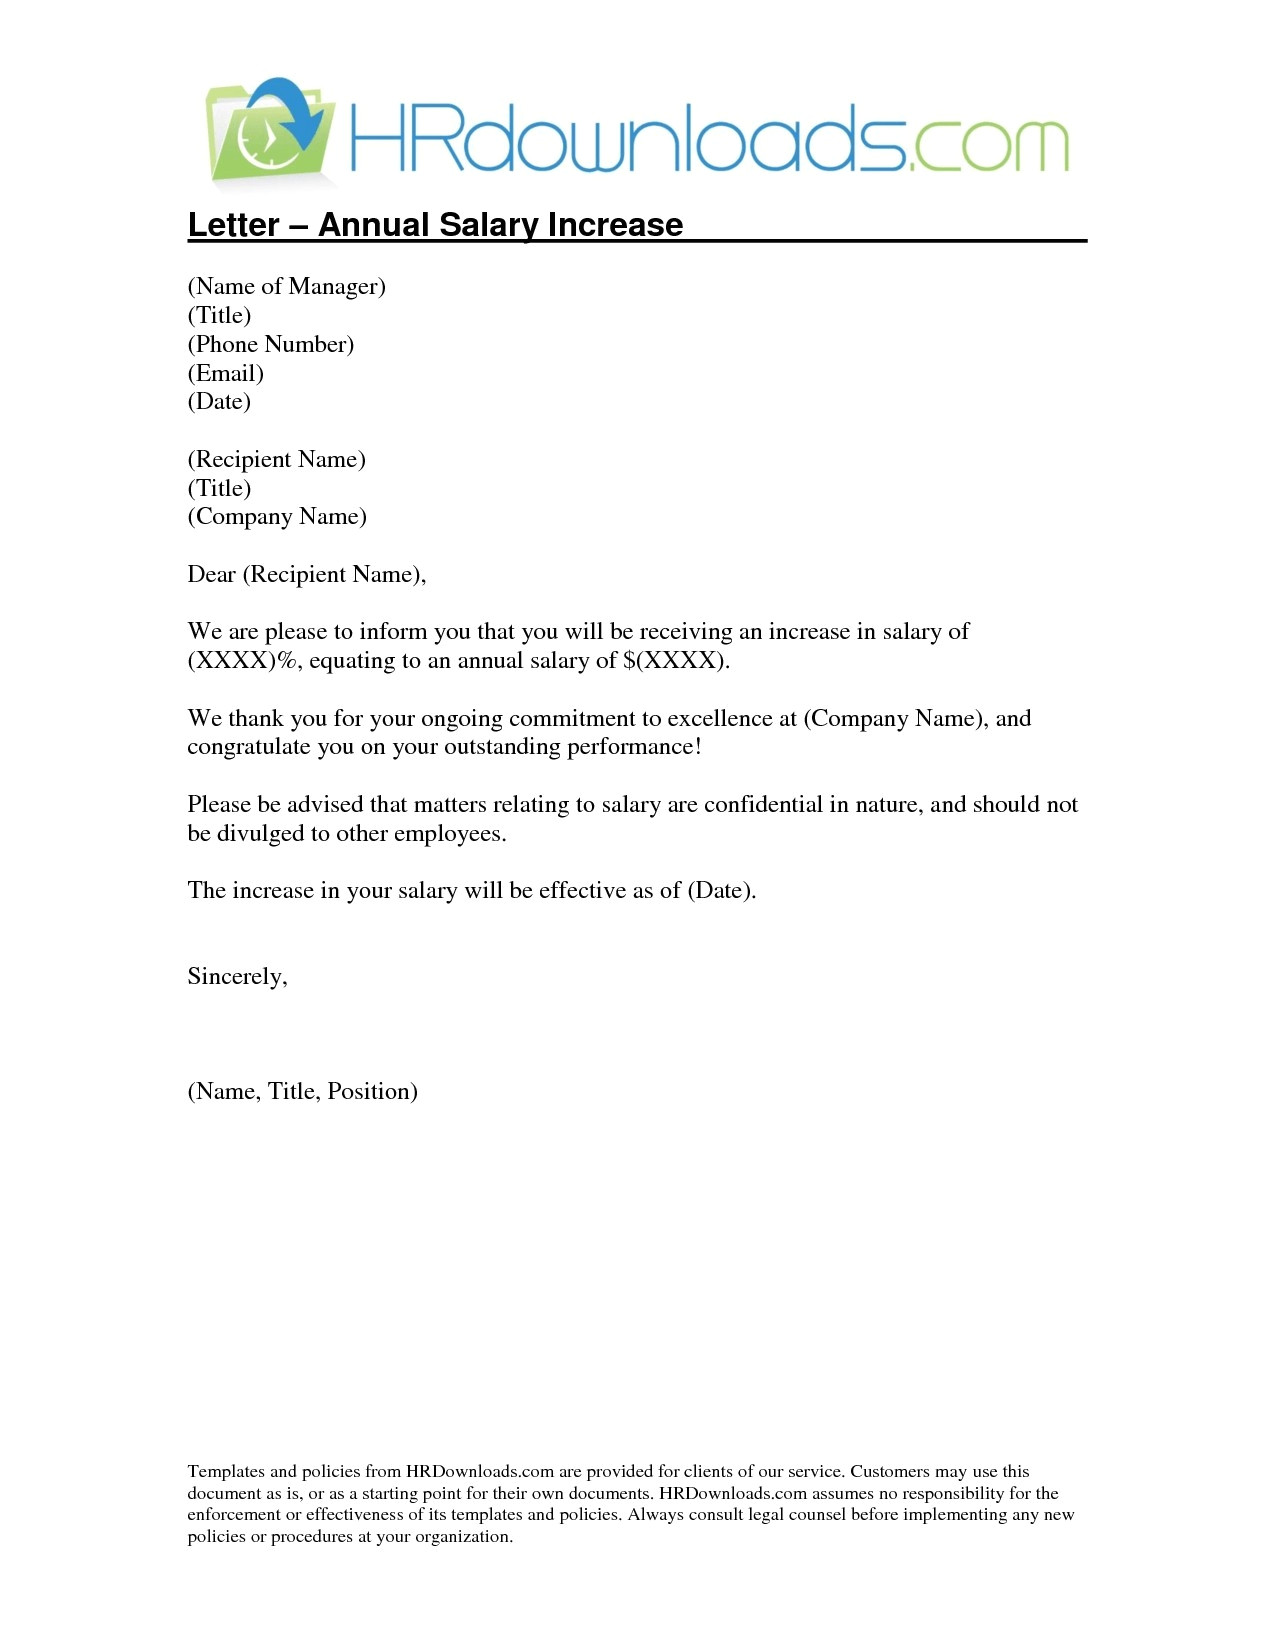 salary review letter template